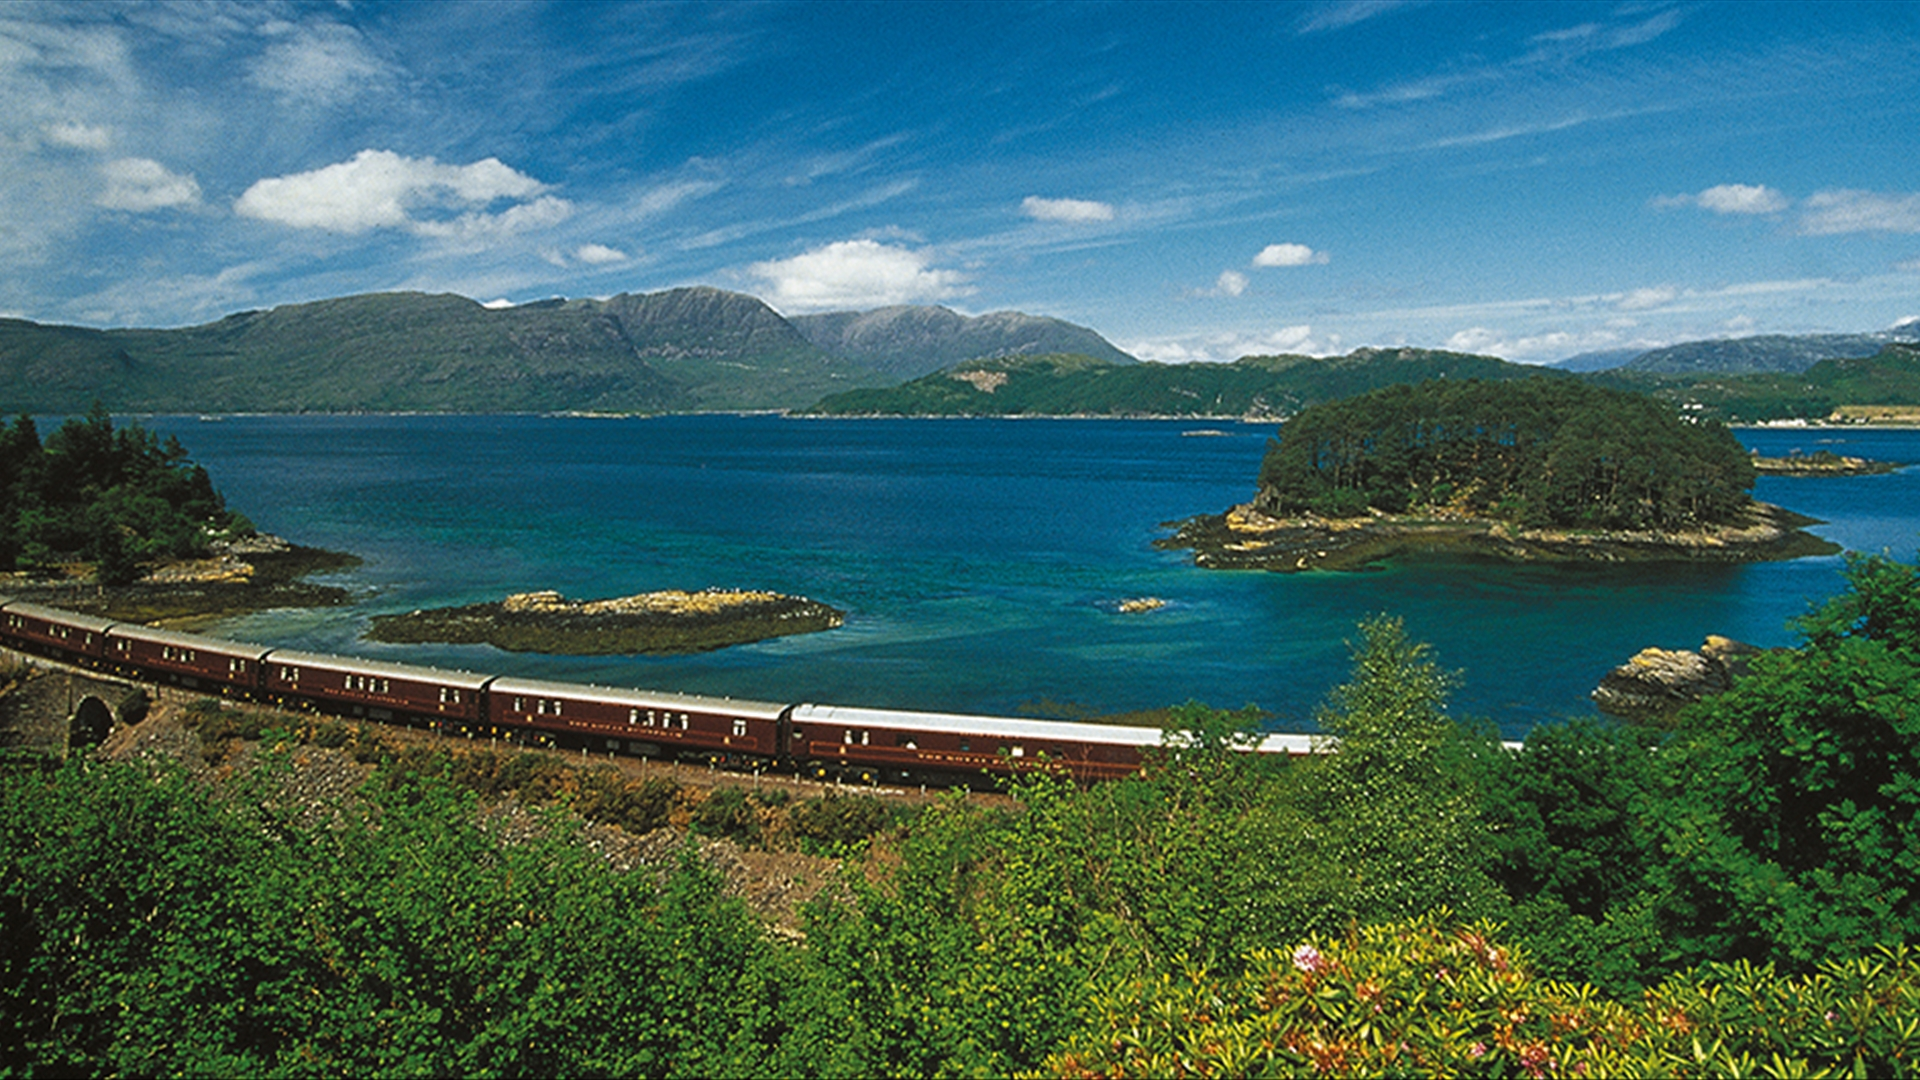 Royal Scotsman Im Royal Scotsman durch Schottland (2021)